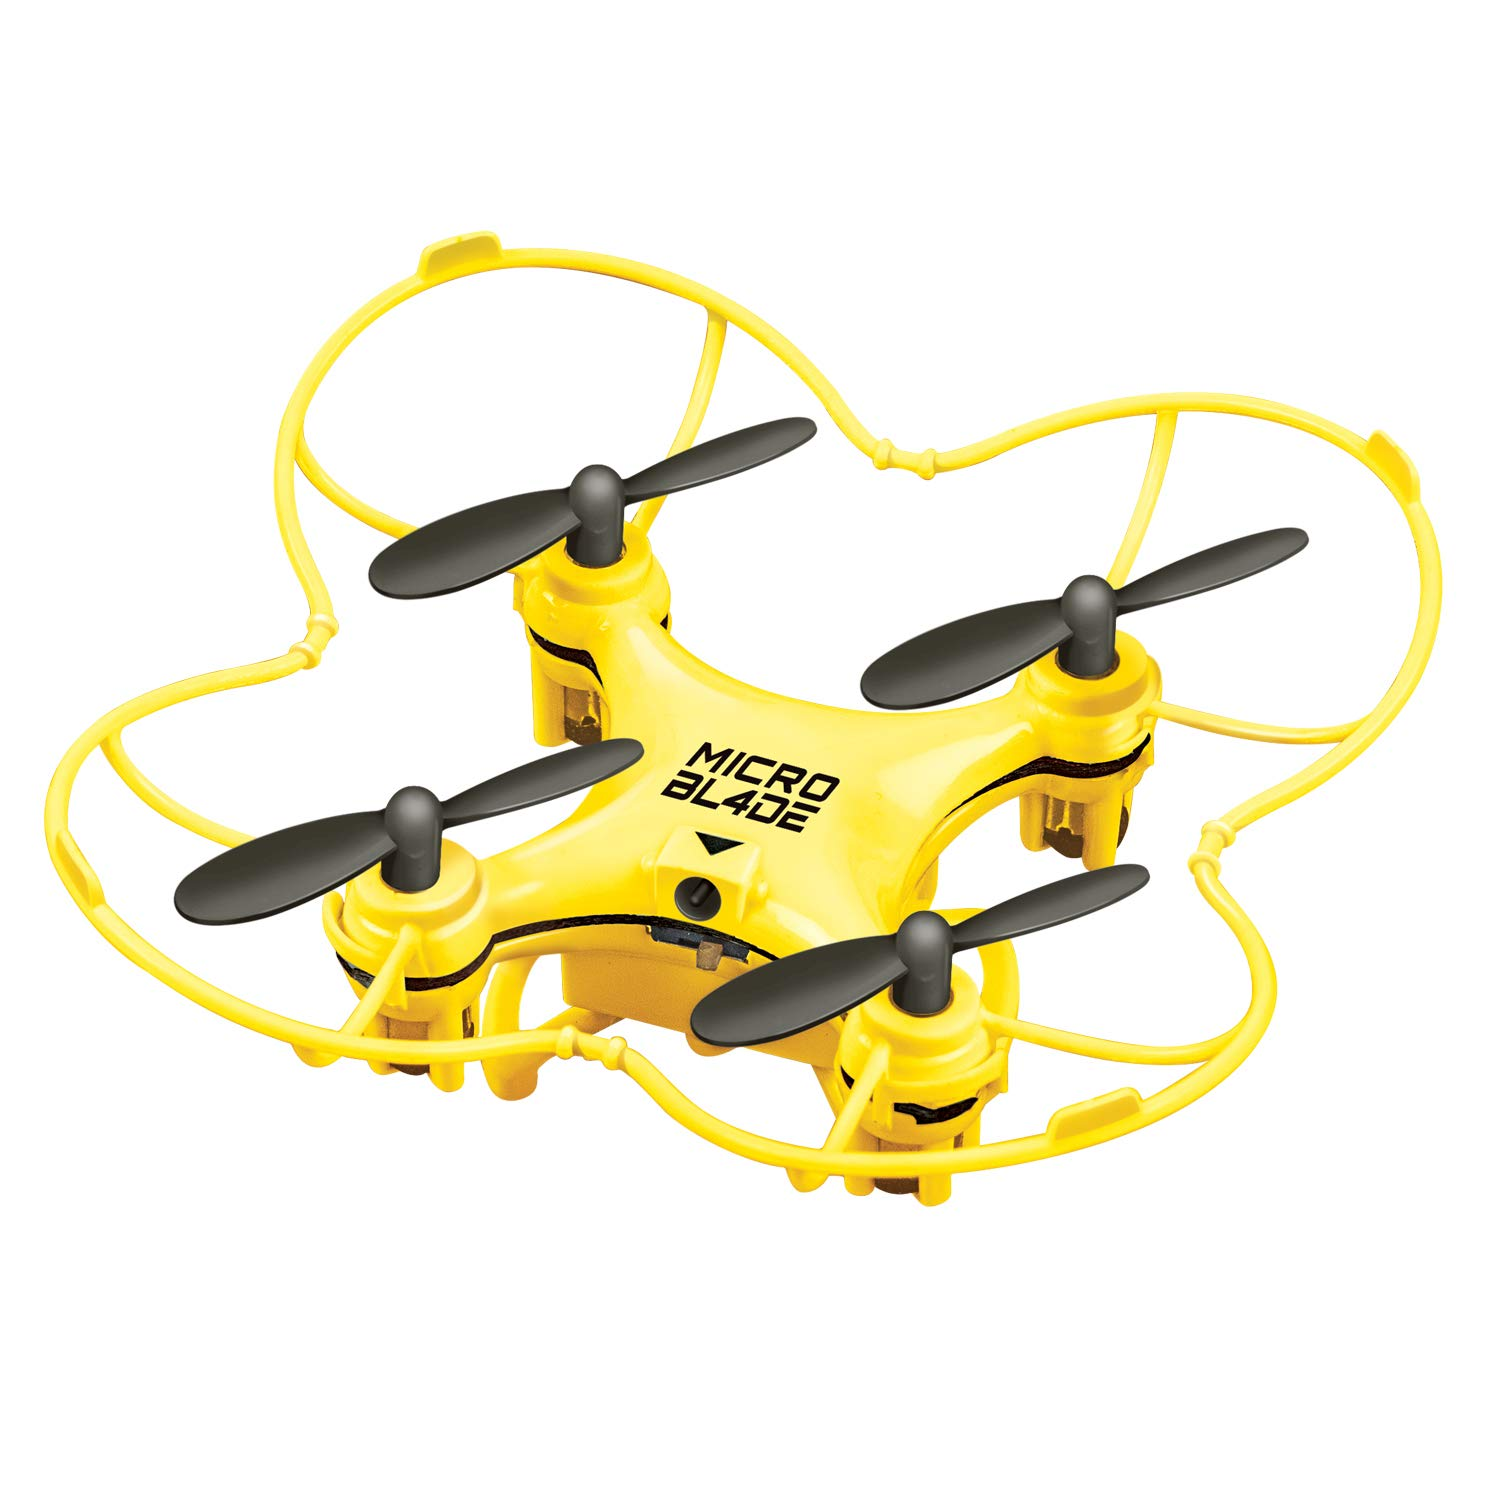 Westminster Micro Blade Aerial Remote Control Drone Yellow